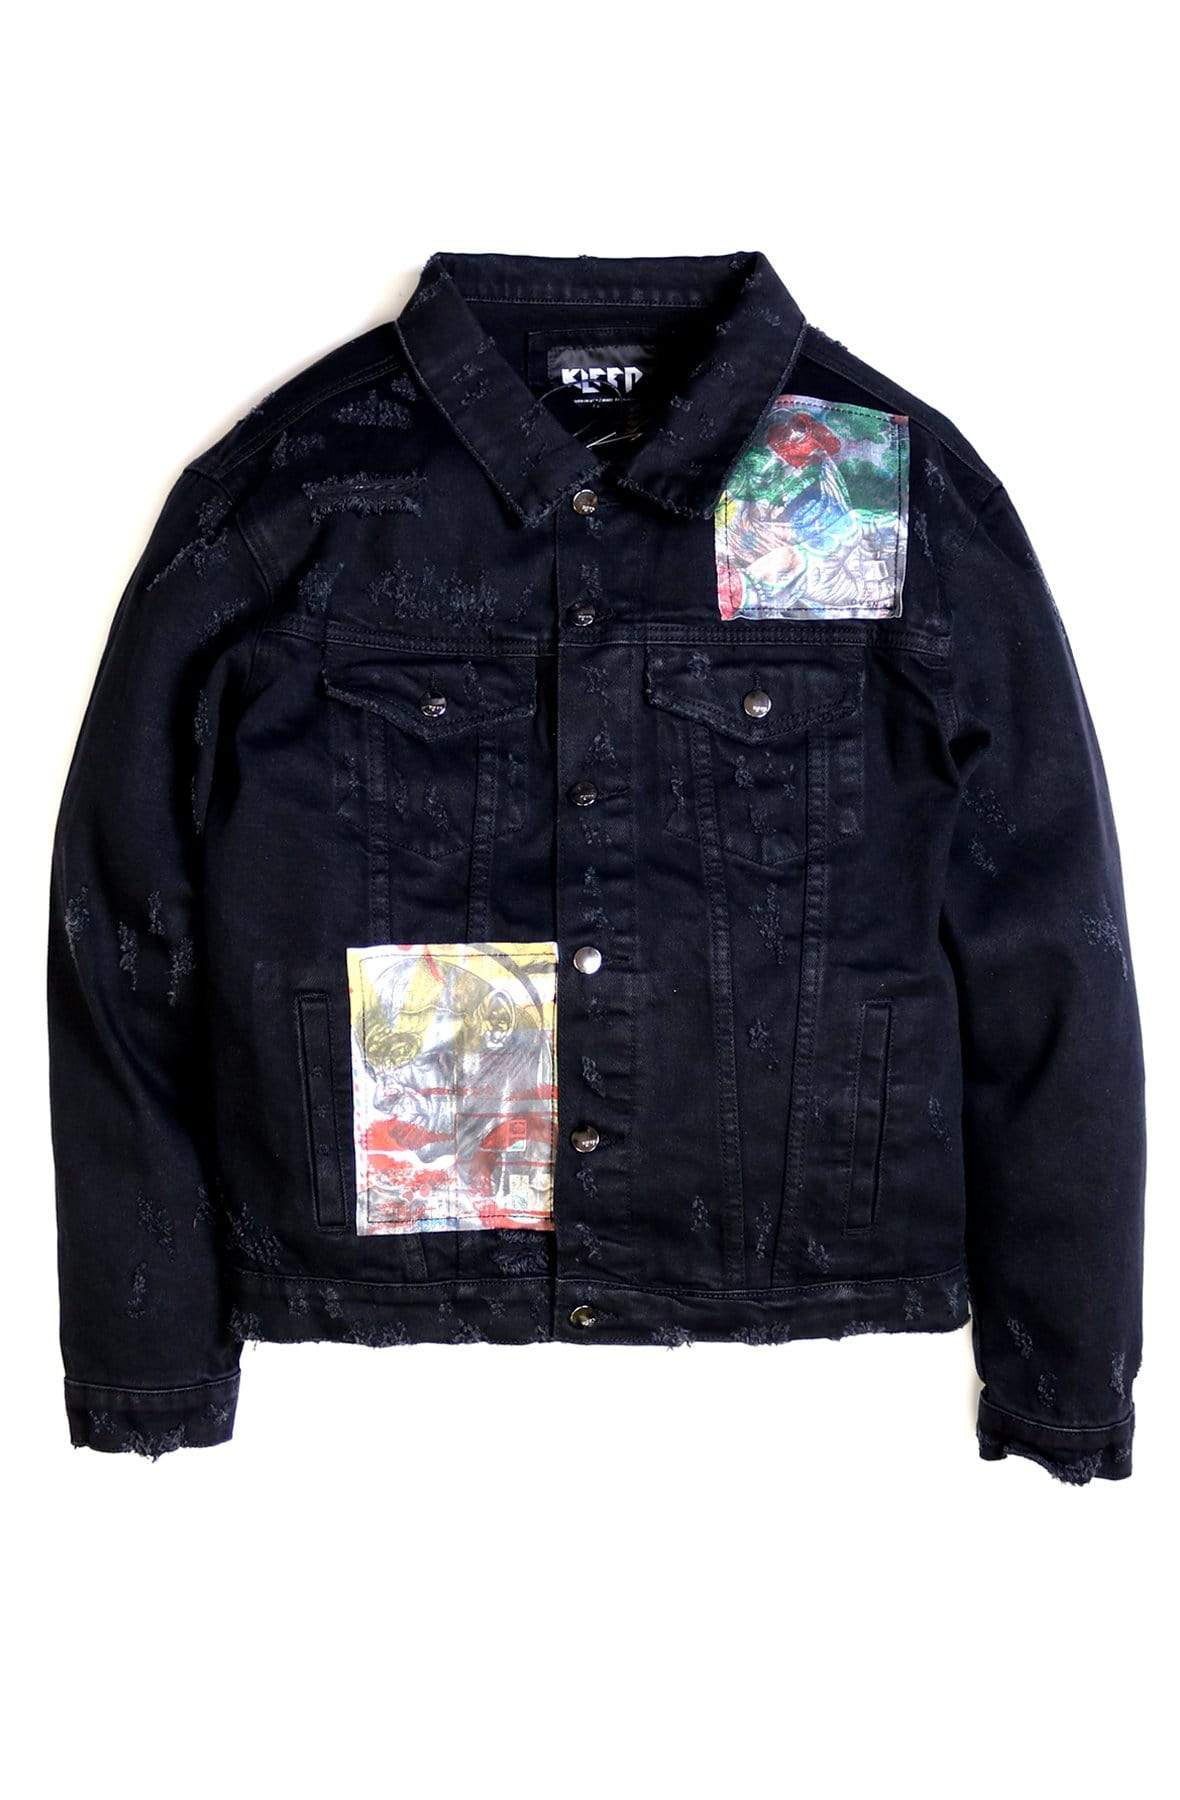 KLEEP Men's Jacket NOIRE Washed Denim Jacket